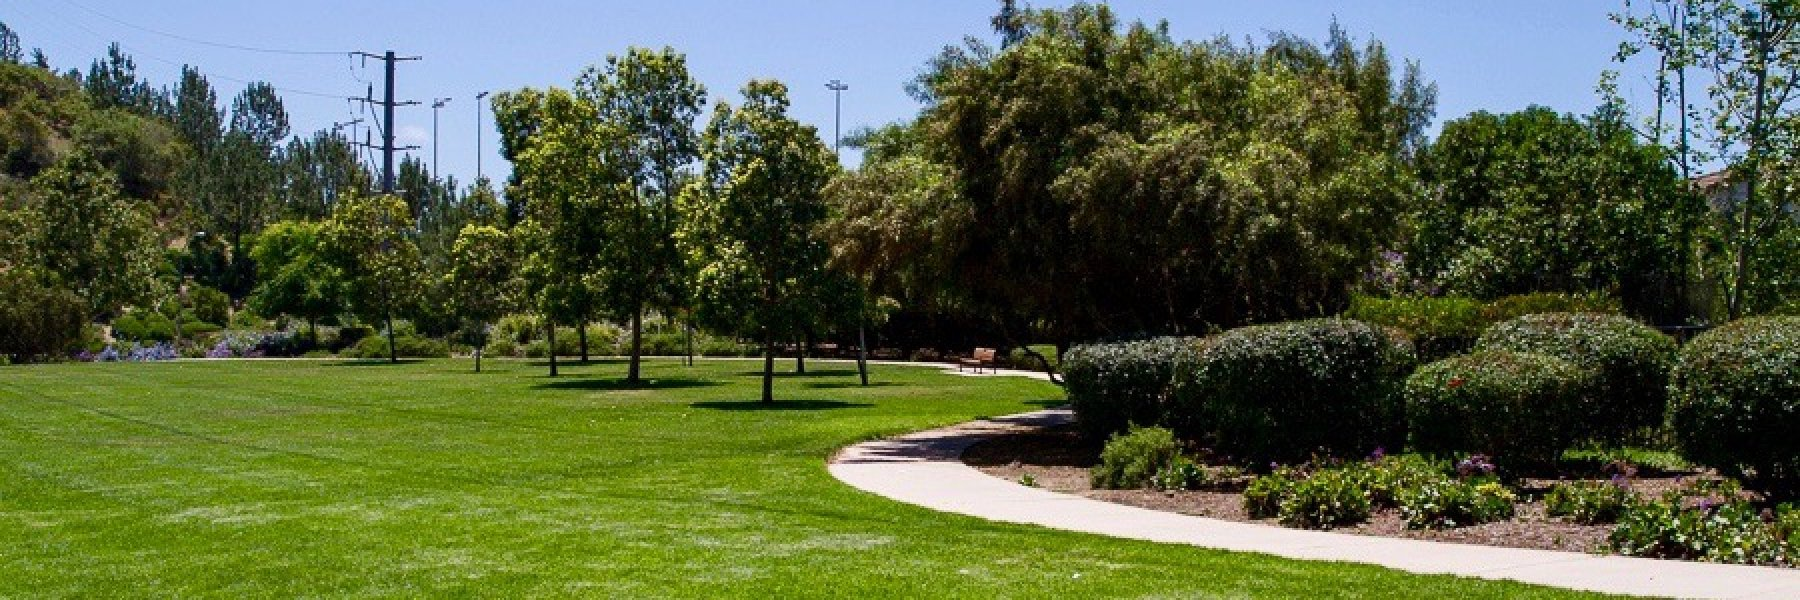 Torrey Hills is a community of homes in San Diego California